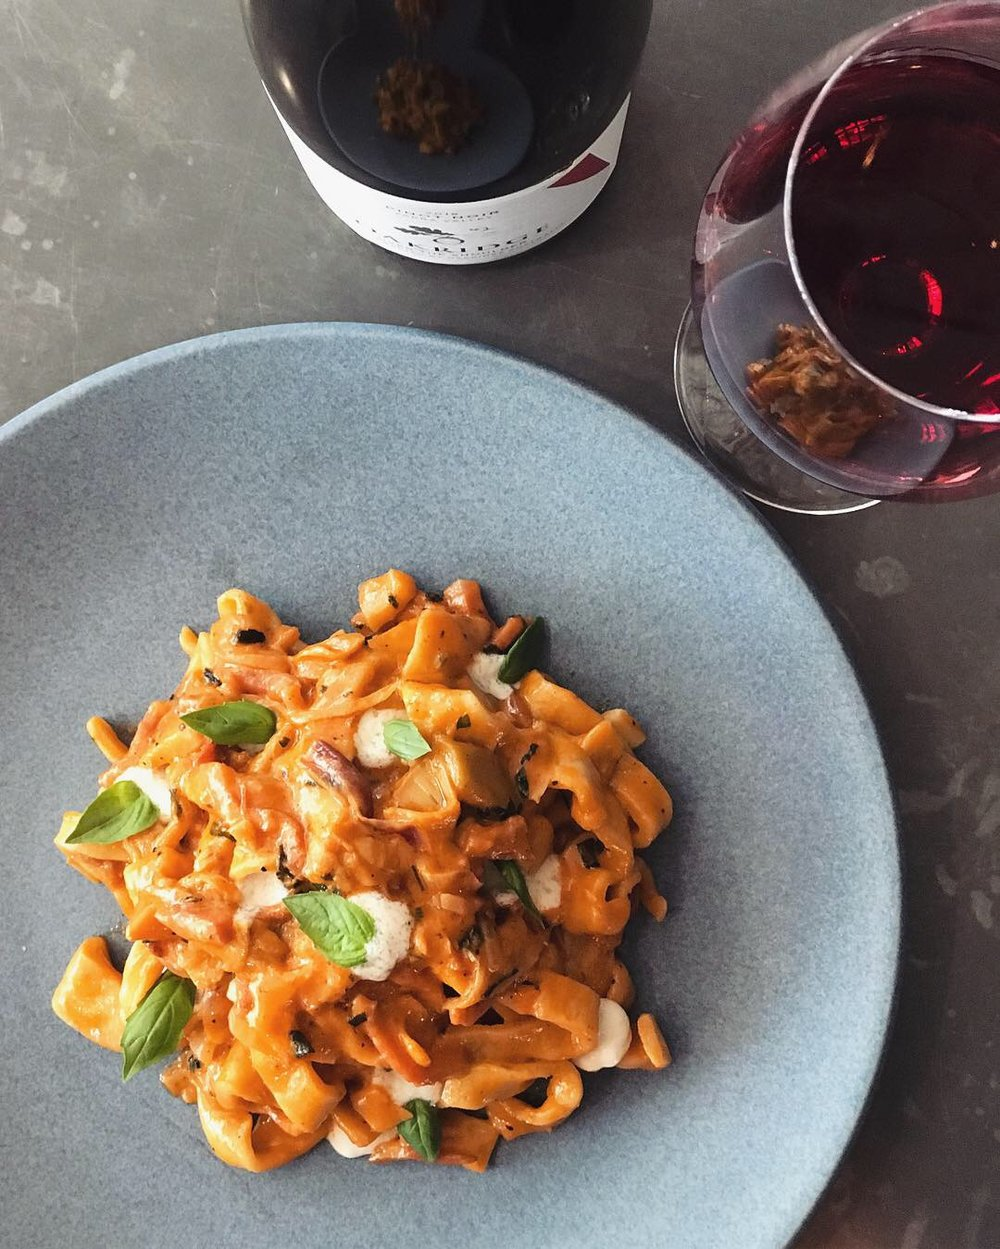 6-13 February - Amalfi scialatelli, pan-fried guanciale, Jerusalem artichokes, sugo di pomodoro, mozzarella cream emulsion, basil.Fun Fact - Scialatelli is a type of hand cut pasta that resembles a short, thicker version of fettuccine. Unlike fettuccine, scialatelli is made without eggs.